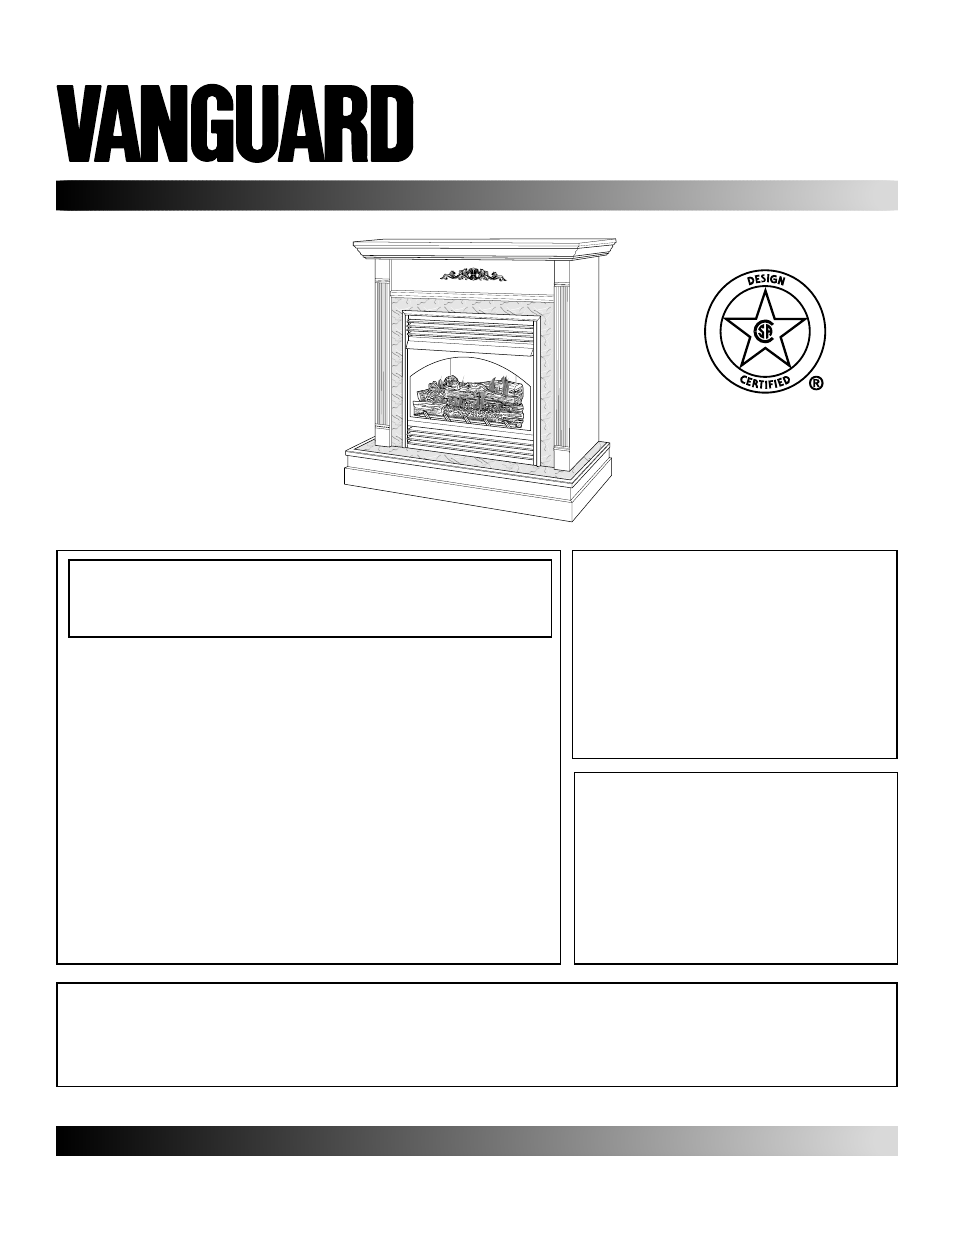 vanguard heating 107156 01e pdf user manual 38 pages